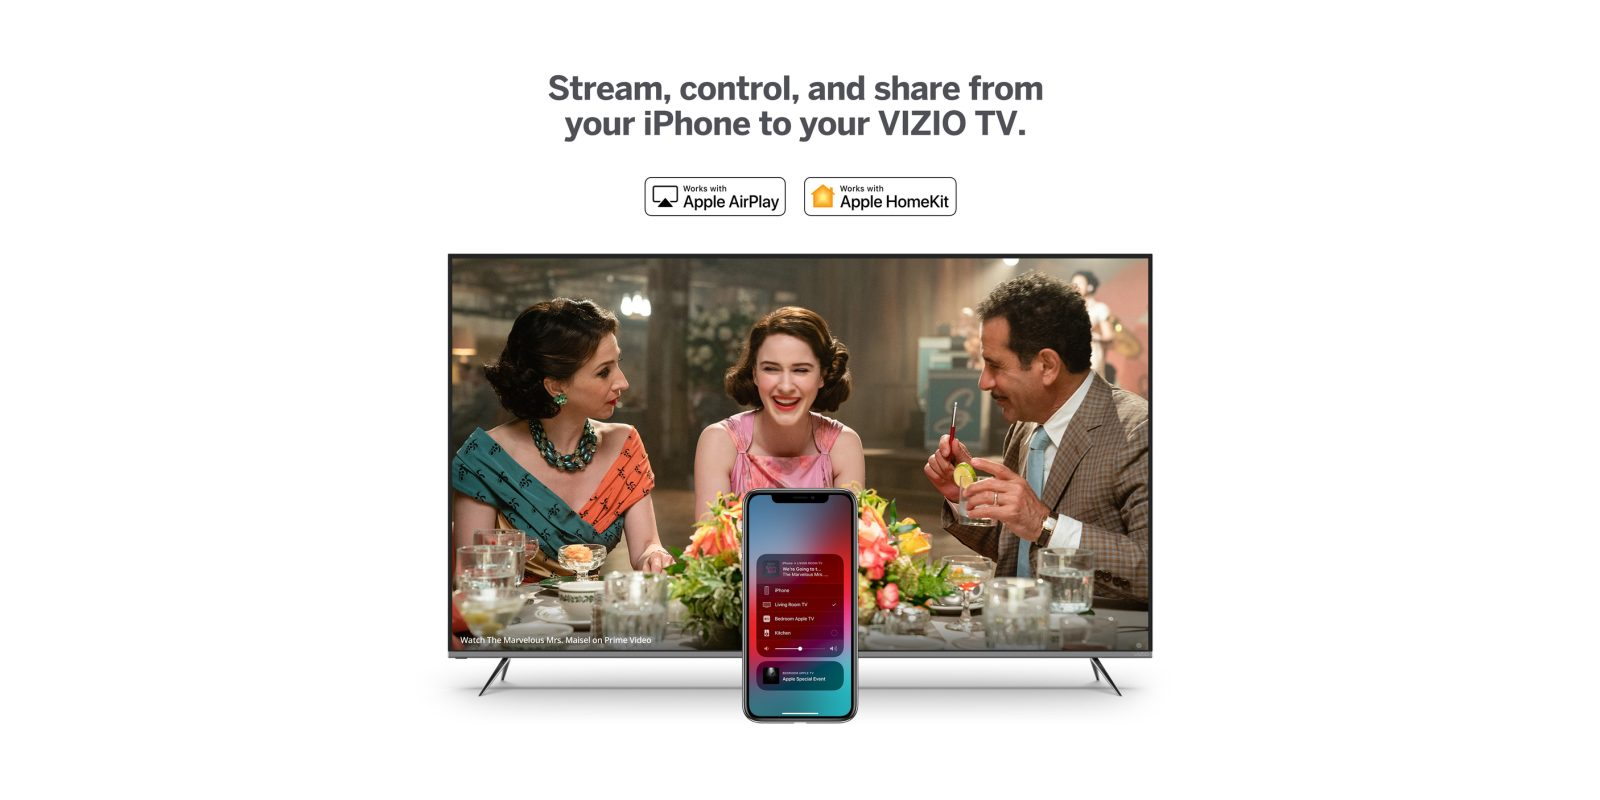 Vizio now rolling out AirPlay 2 and HomeKit support to its